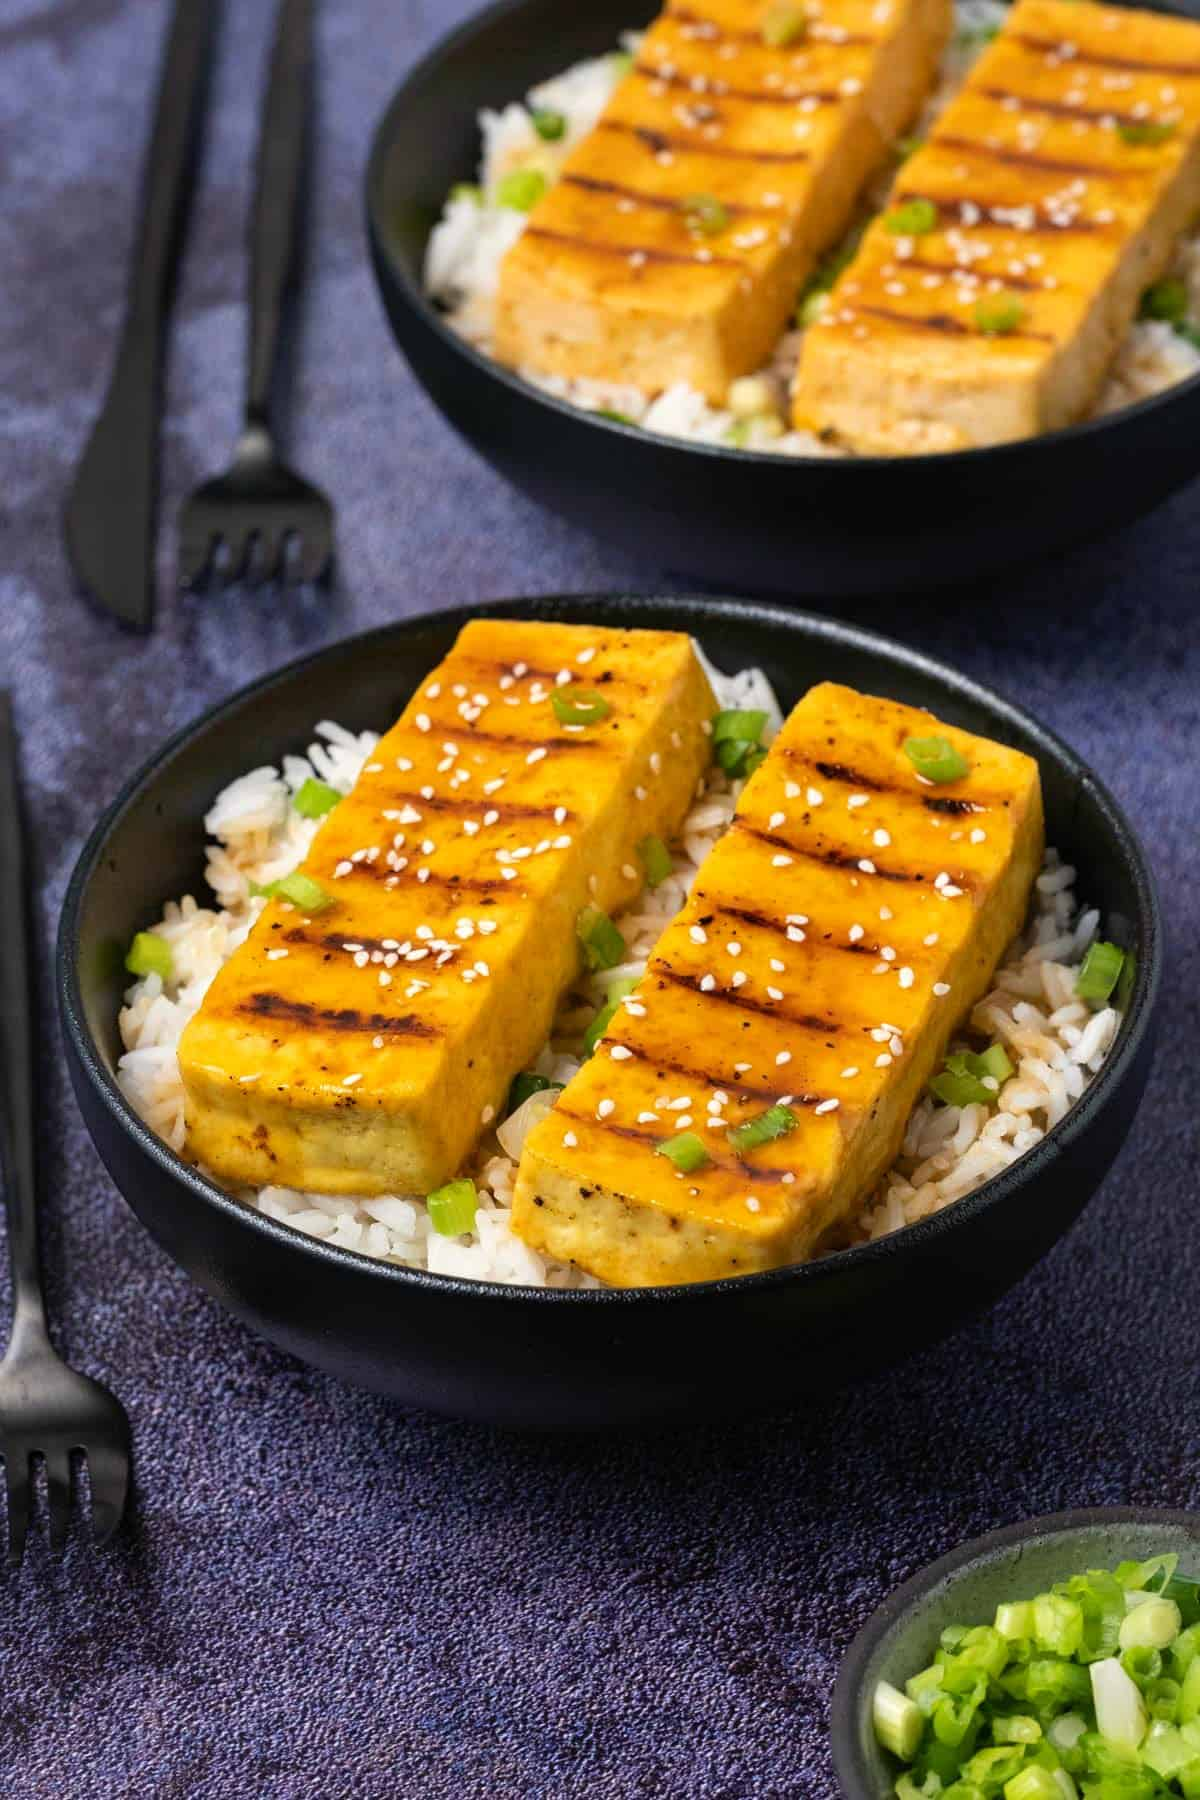 Grilled tofu with green onions and basmati rice in a black bowl.